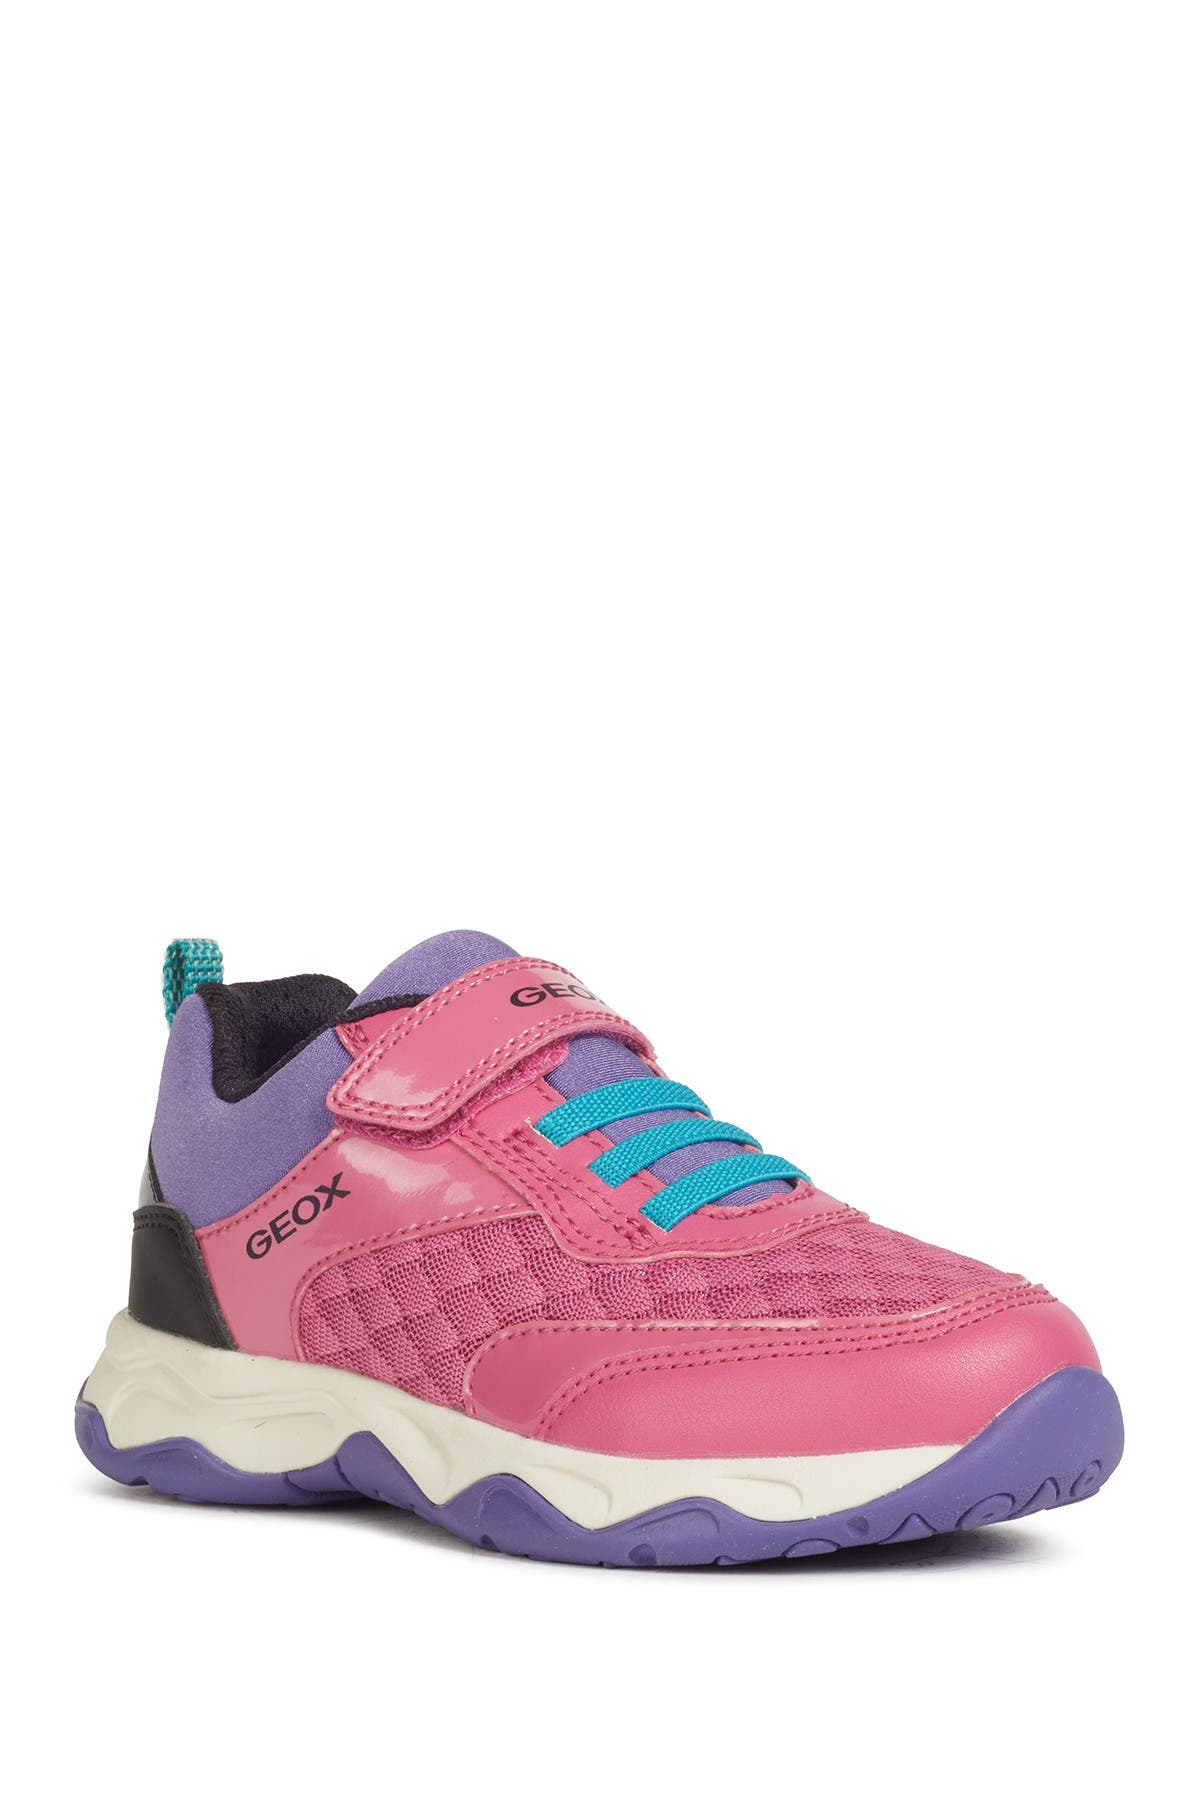 Image of GEOX Calco Sneaker